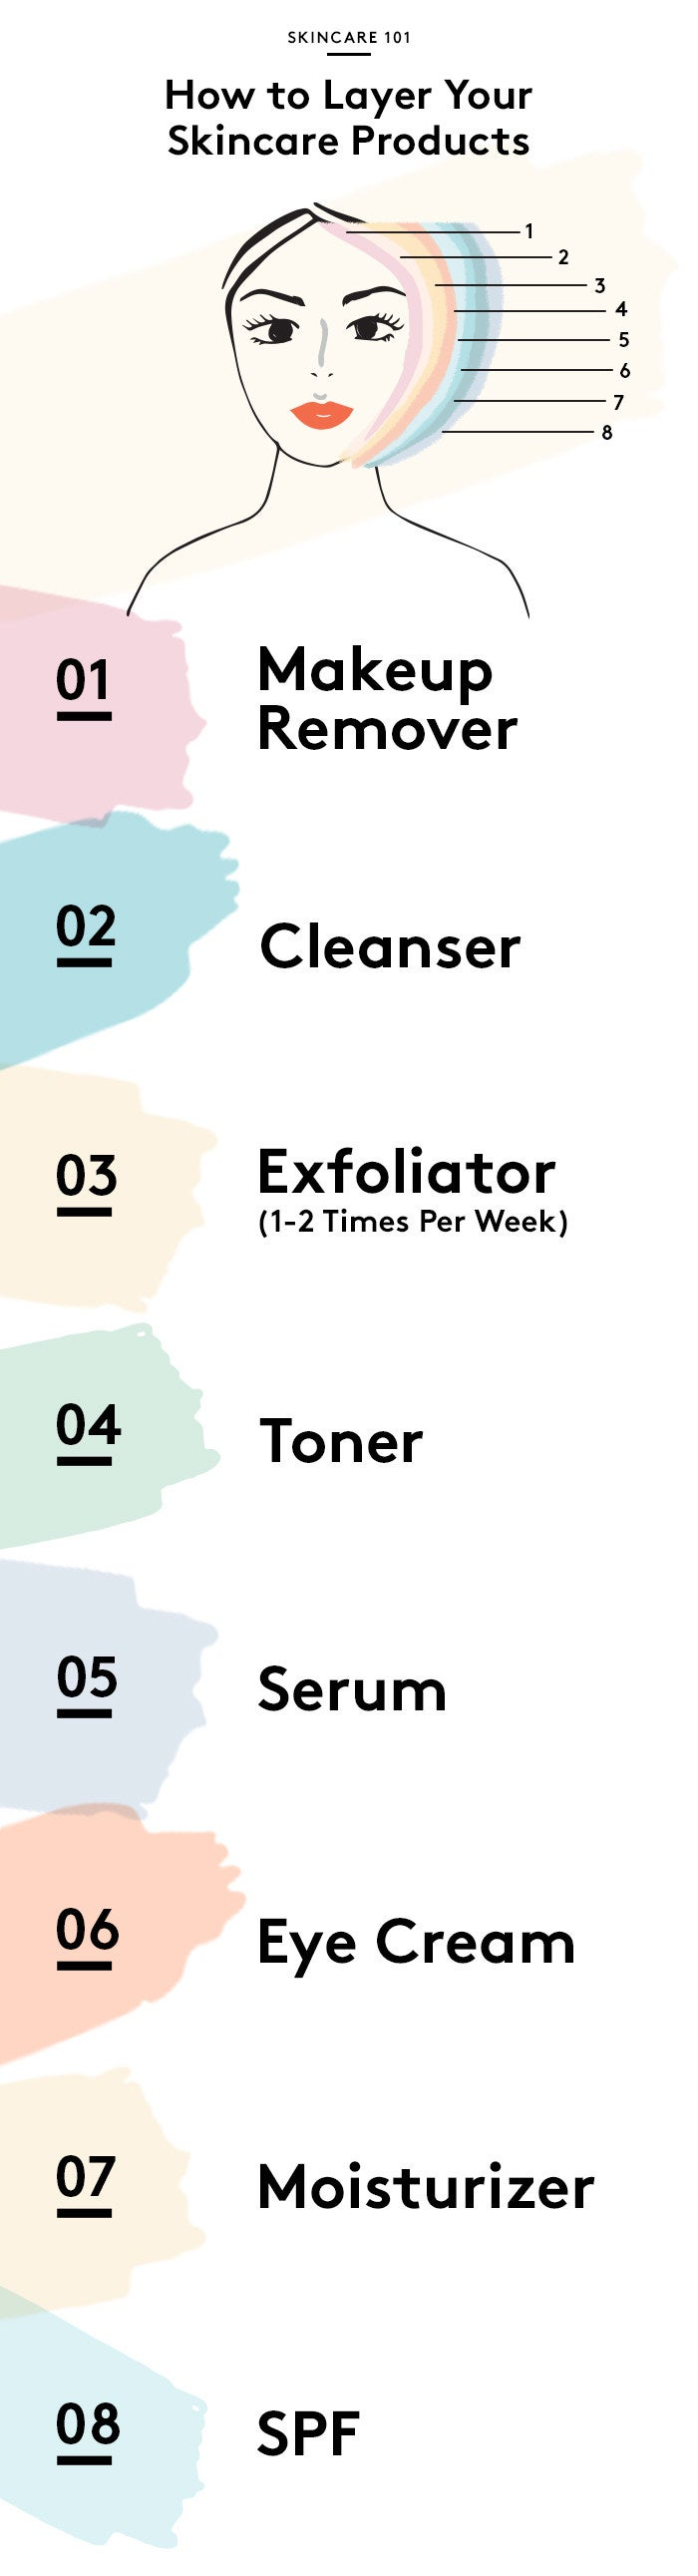 Chart listing order to use skincare: makeup remover, cleanser, exfoliator, toner, serum, eye cream, moisturizer, and spf